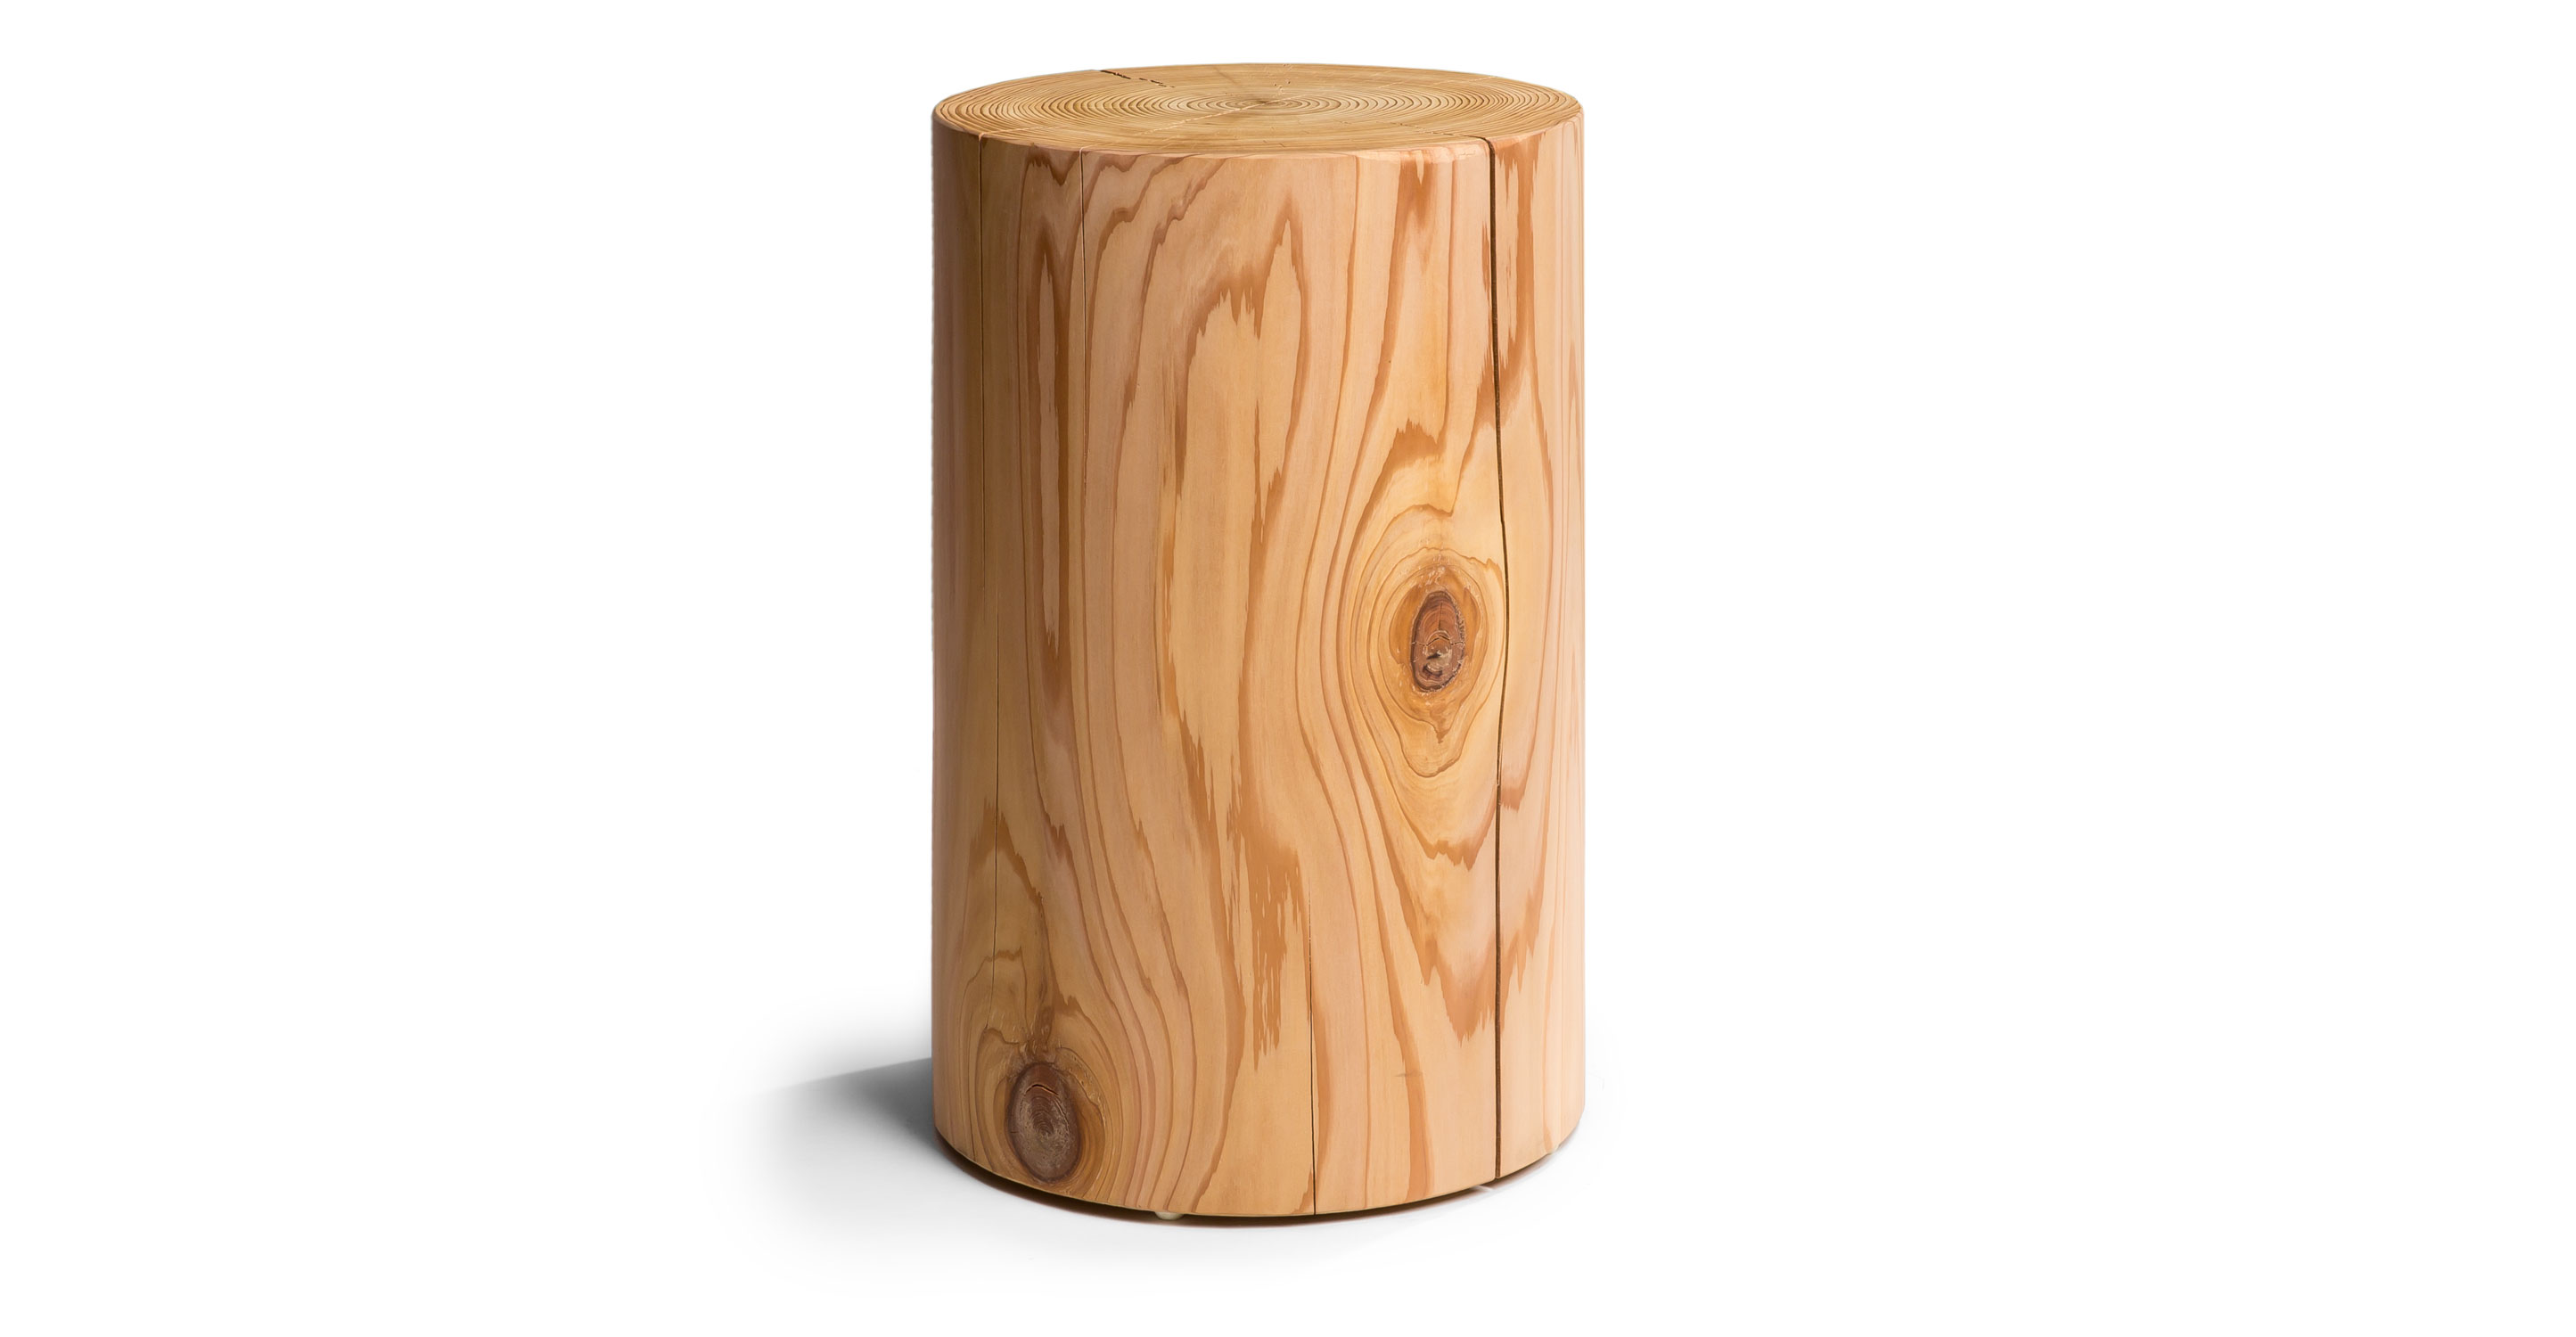 Thuja Block 22quot Cylinder Wood Blocks Article Modern  : image12983 from www.bryght.com size 2890 x 1500 jpeg 199kB